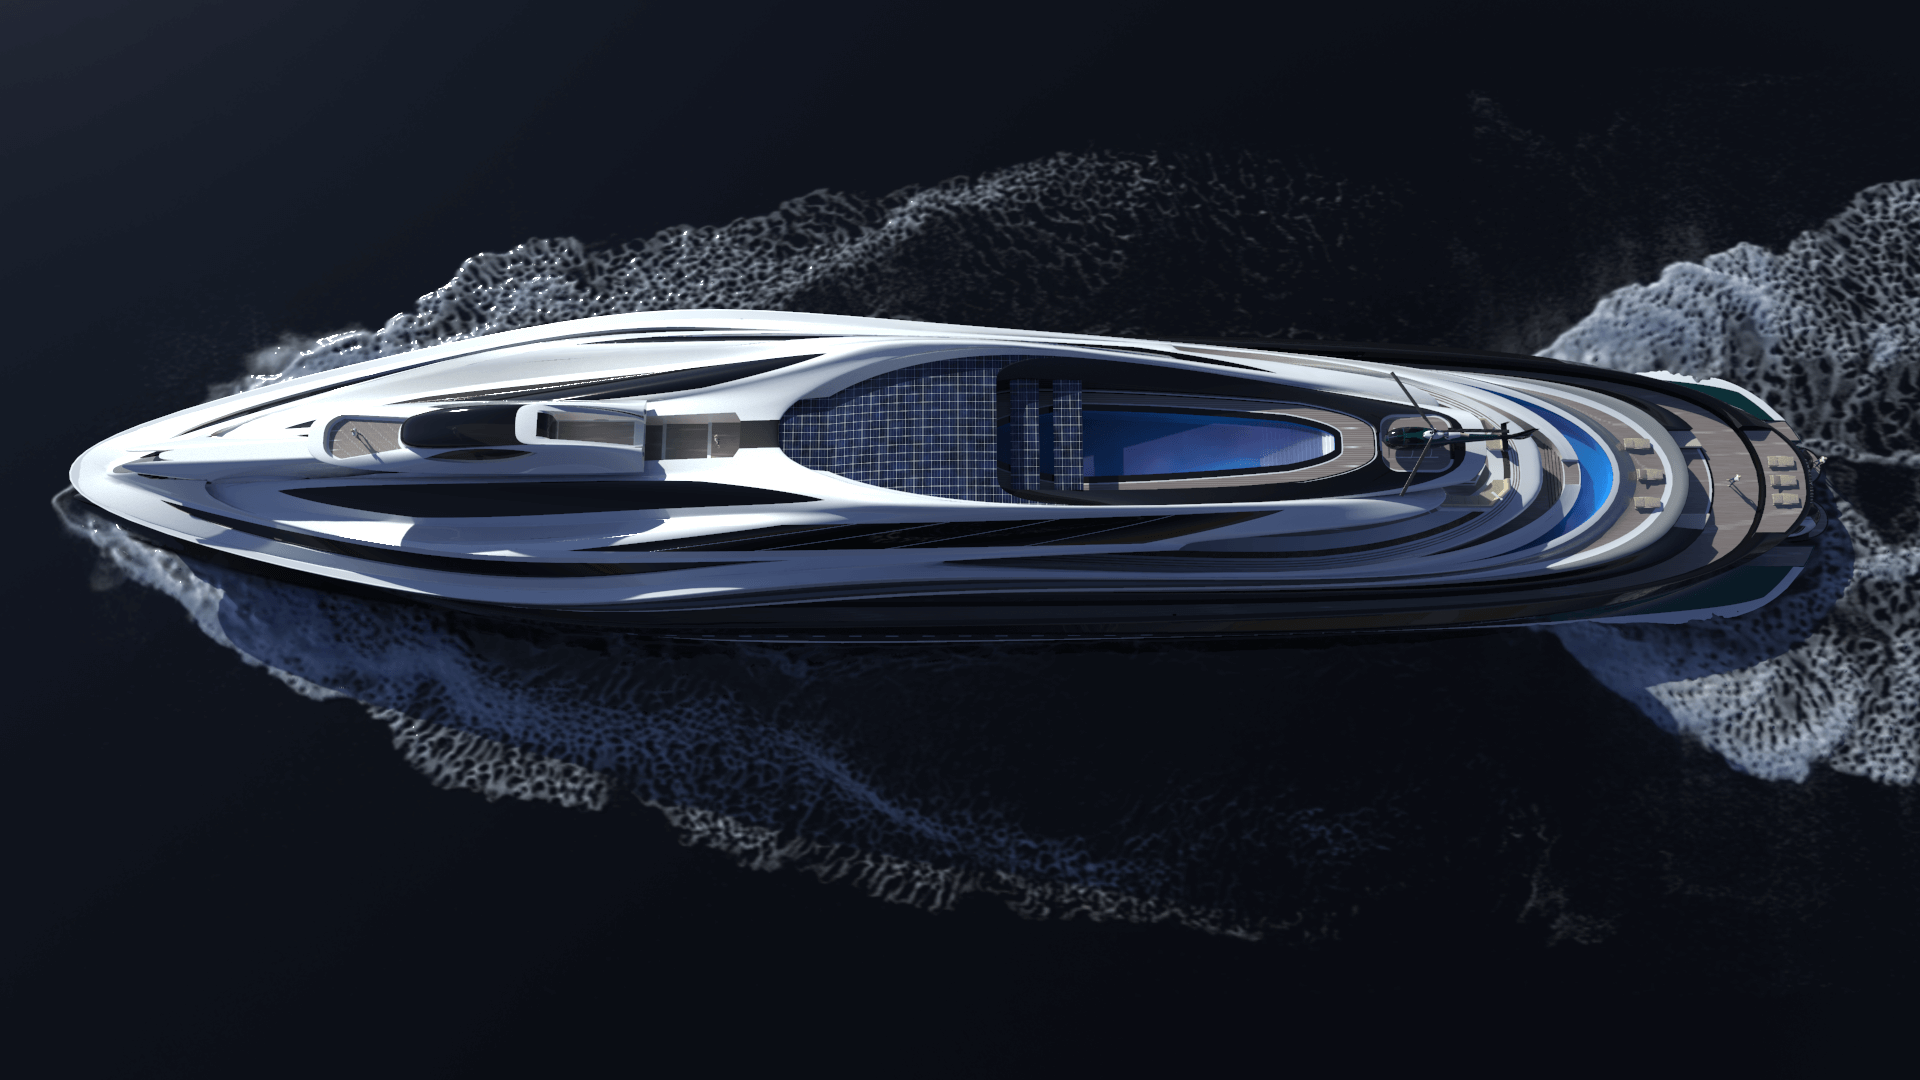 Superyacht Concept Avanguardia The Swan by Lazzarini Studio Design Aerial View